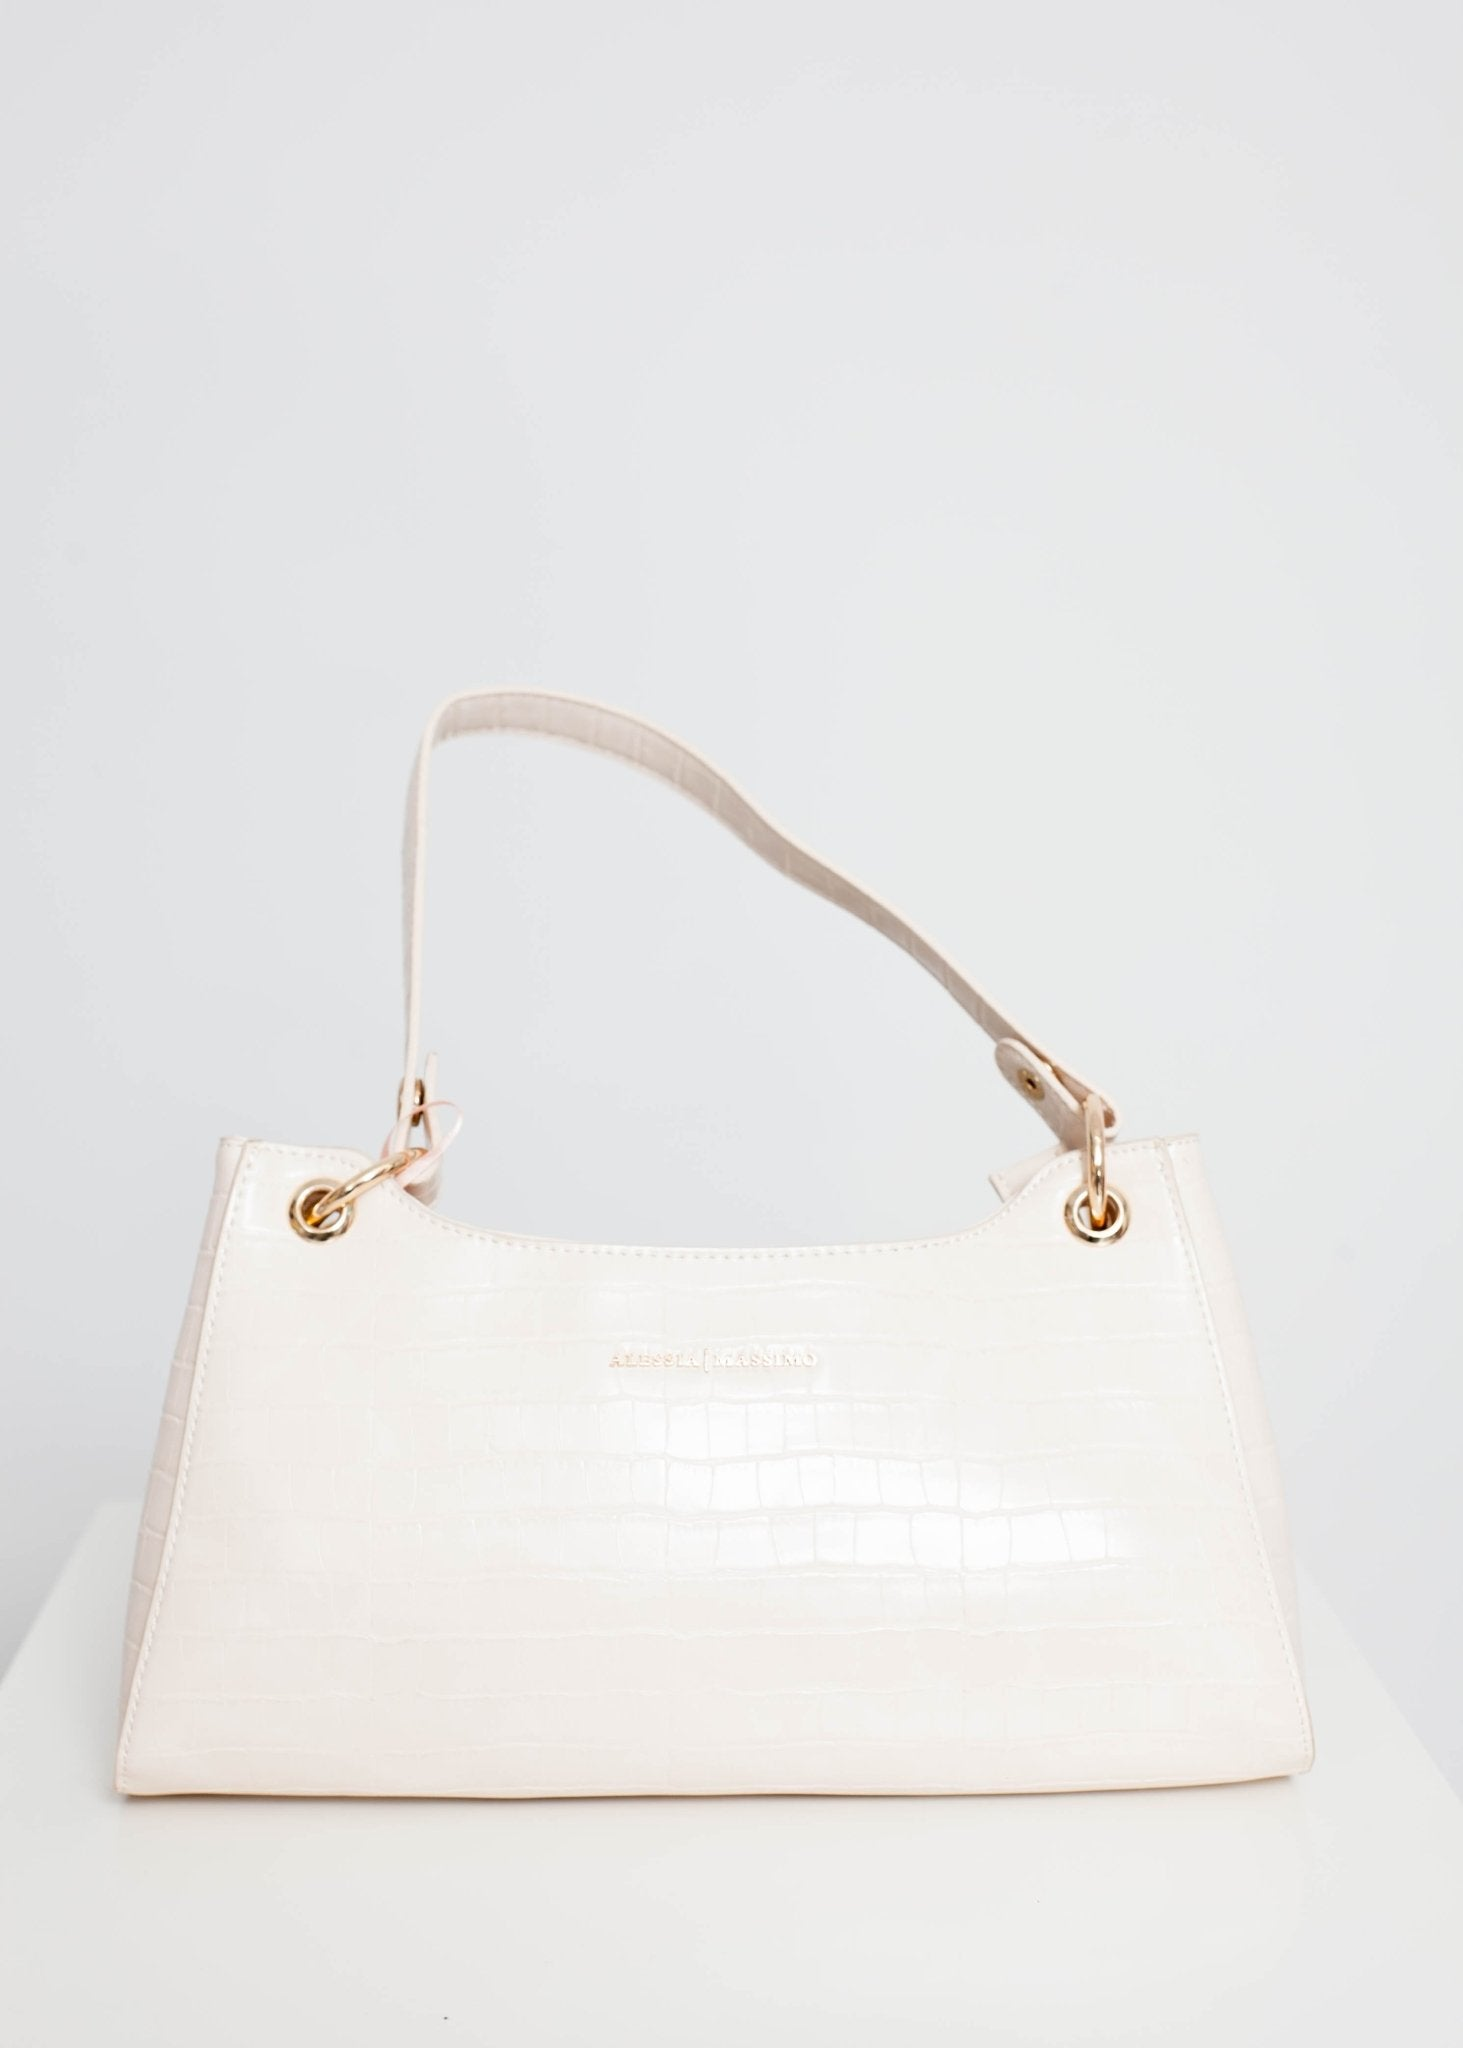 Alex Faux Croc Bag In Cream - The Walk in Wardrobe